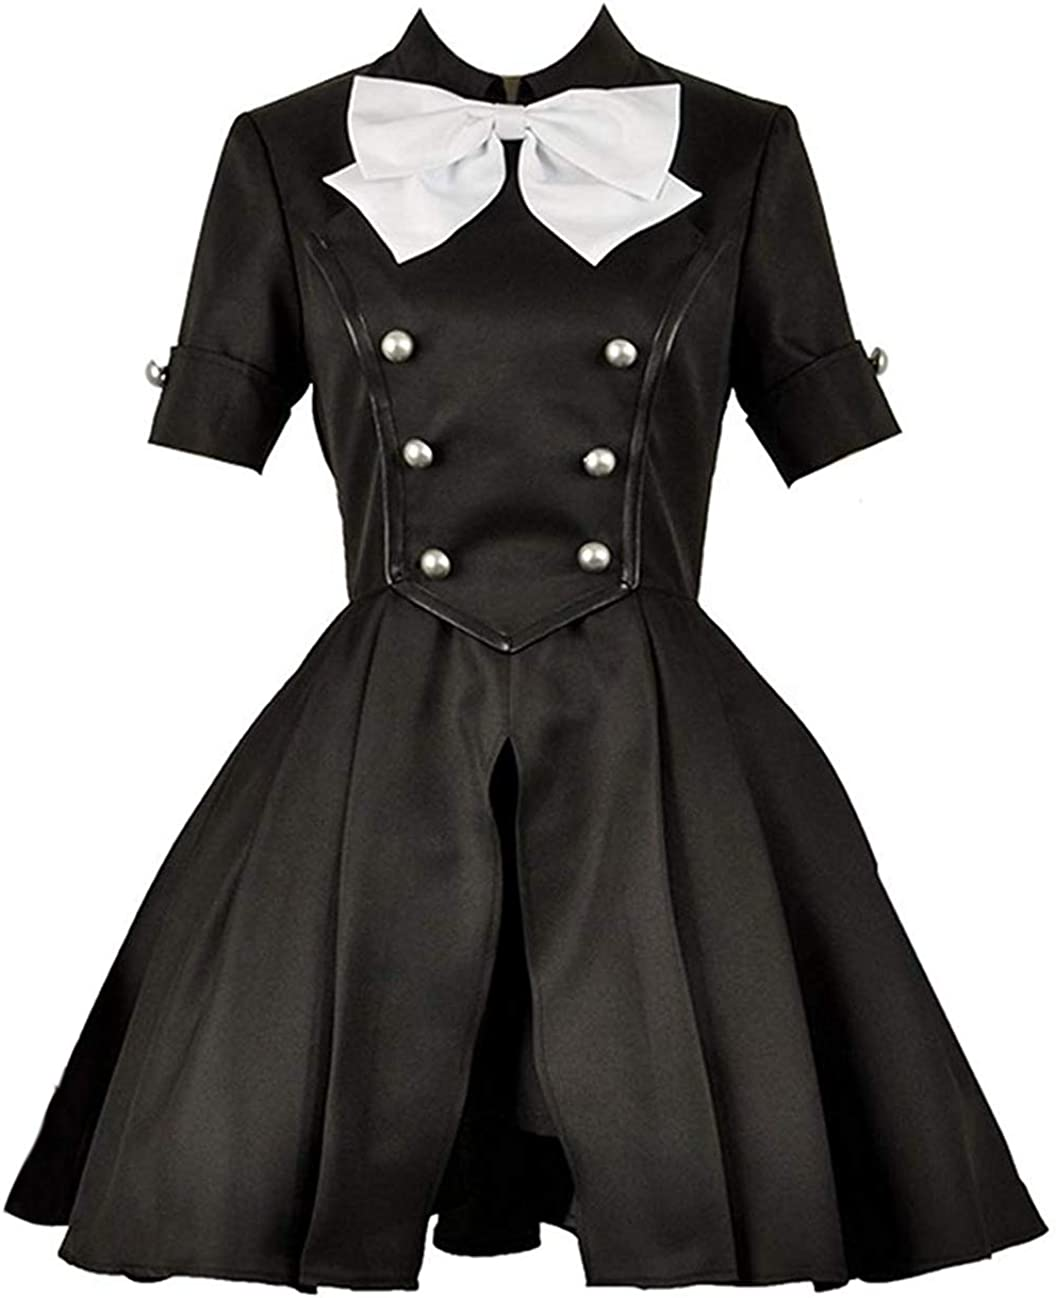 LYLAS Jacksonville Mall Black Dress Outfit Trust Costume Suit Cosplay Halloween